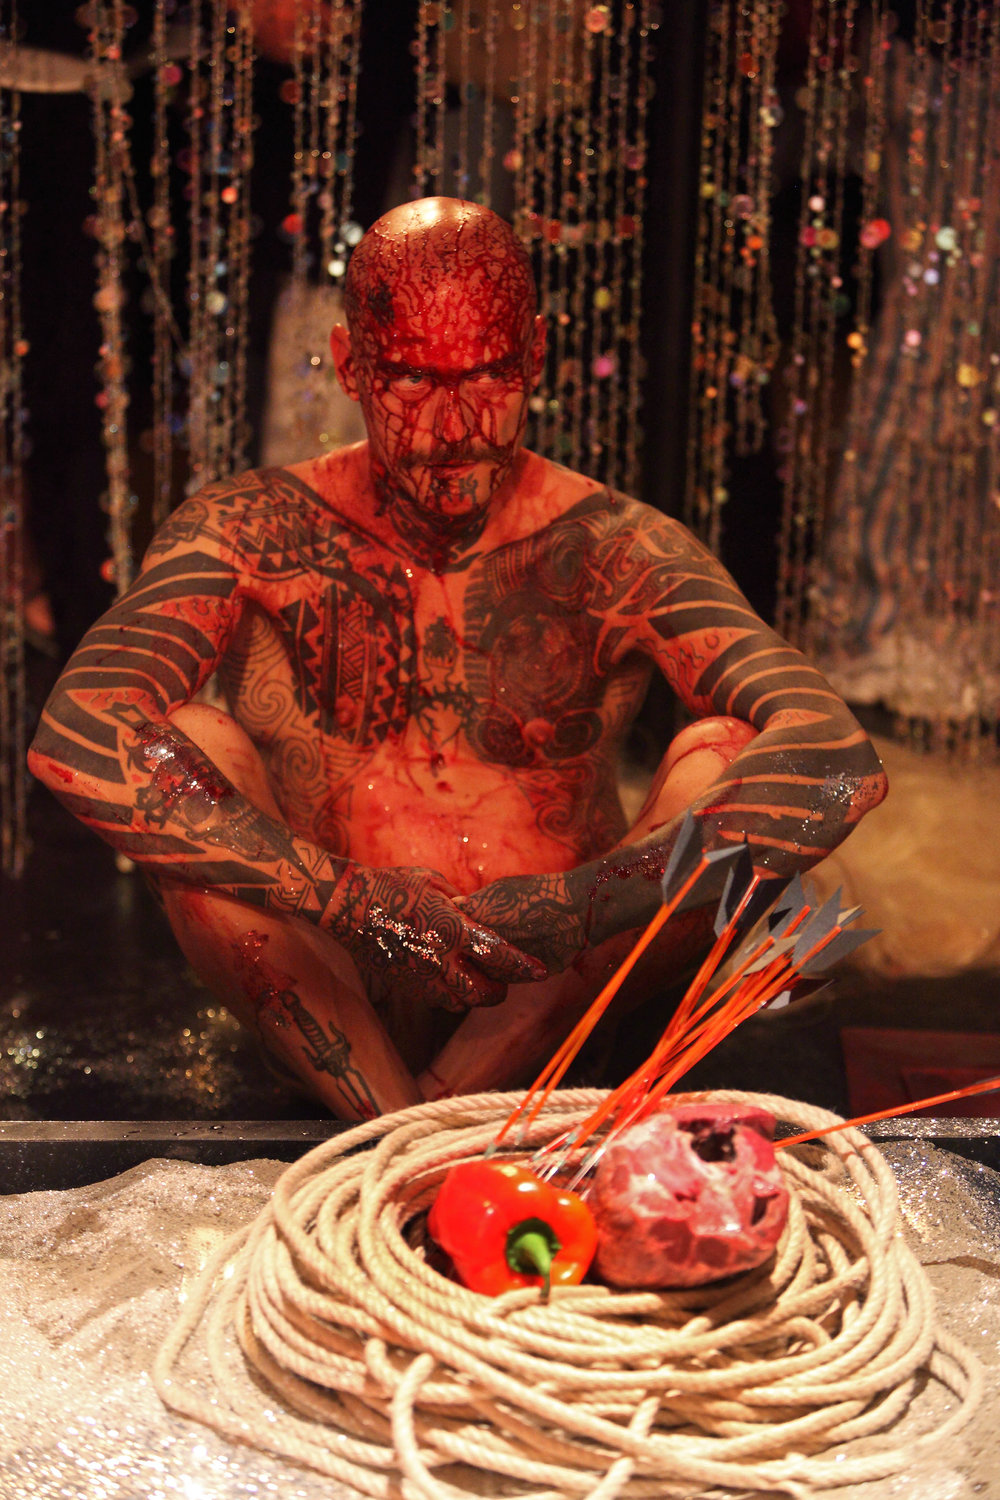 Ron Athey,  History of Ecstasy , sound design Othon Mataragas, vocalist Ernesto Tomasini, performers: Ron Athey, Julie Tolentino, Pigpen aka Lisa Rifkin, Vaginal Davis aka Clarence Sanders, Lee Adams, Mouse aka Amanda Hull, photo A. Benestante